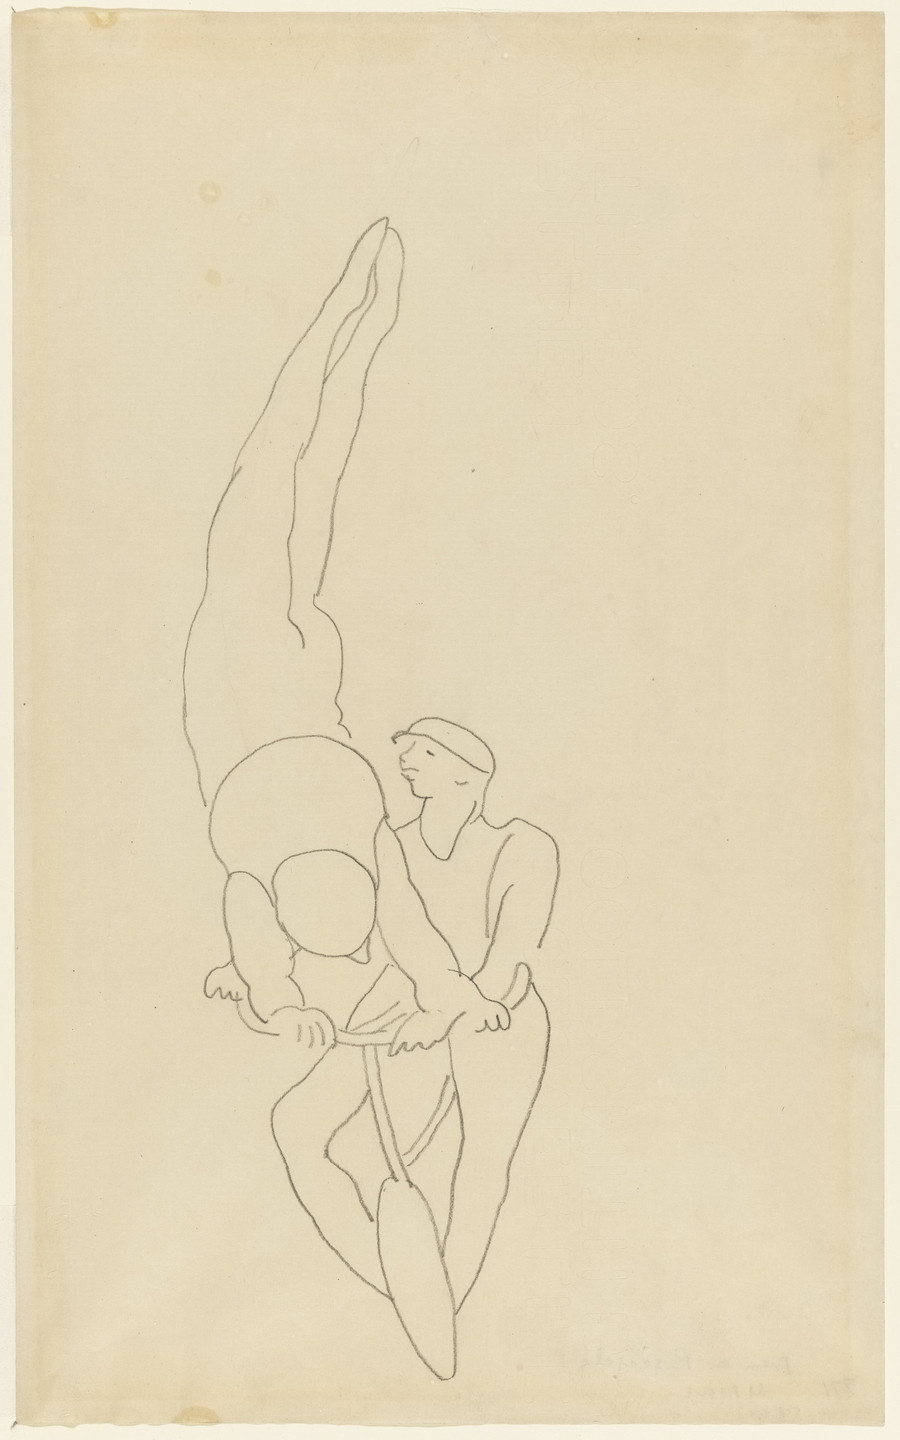 Charles Demuth. Study for Acrobats. (1919)